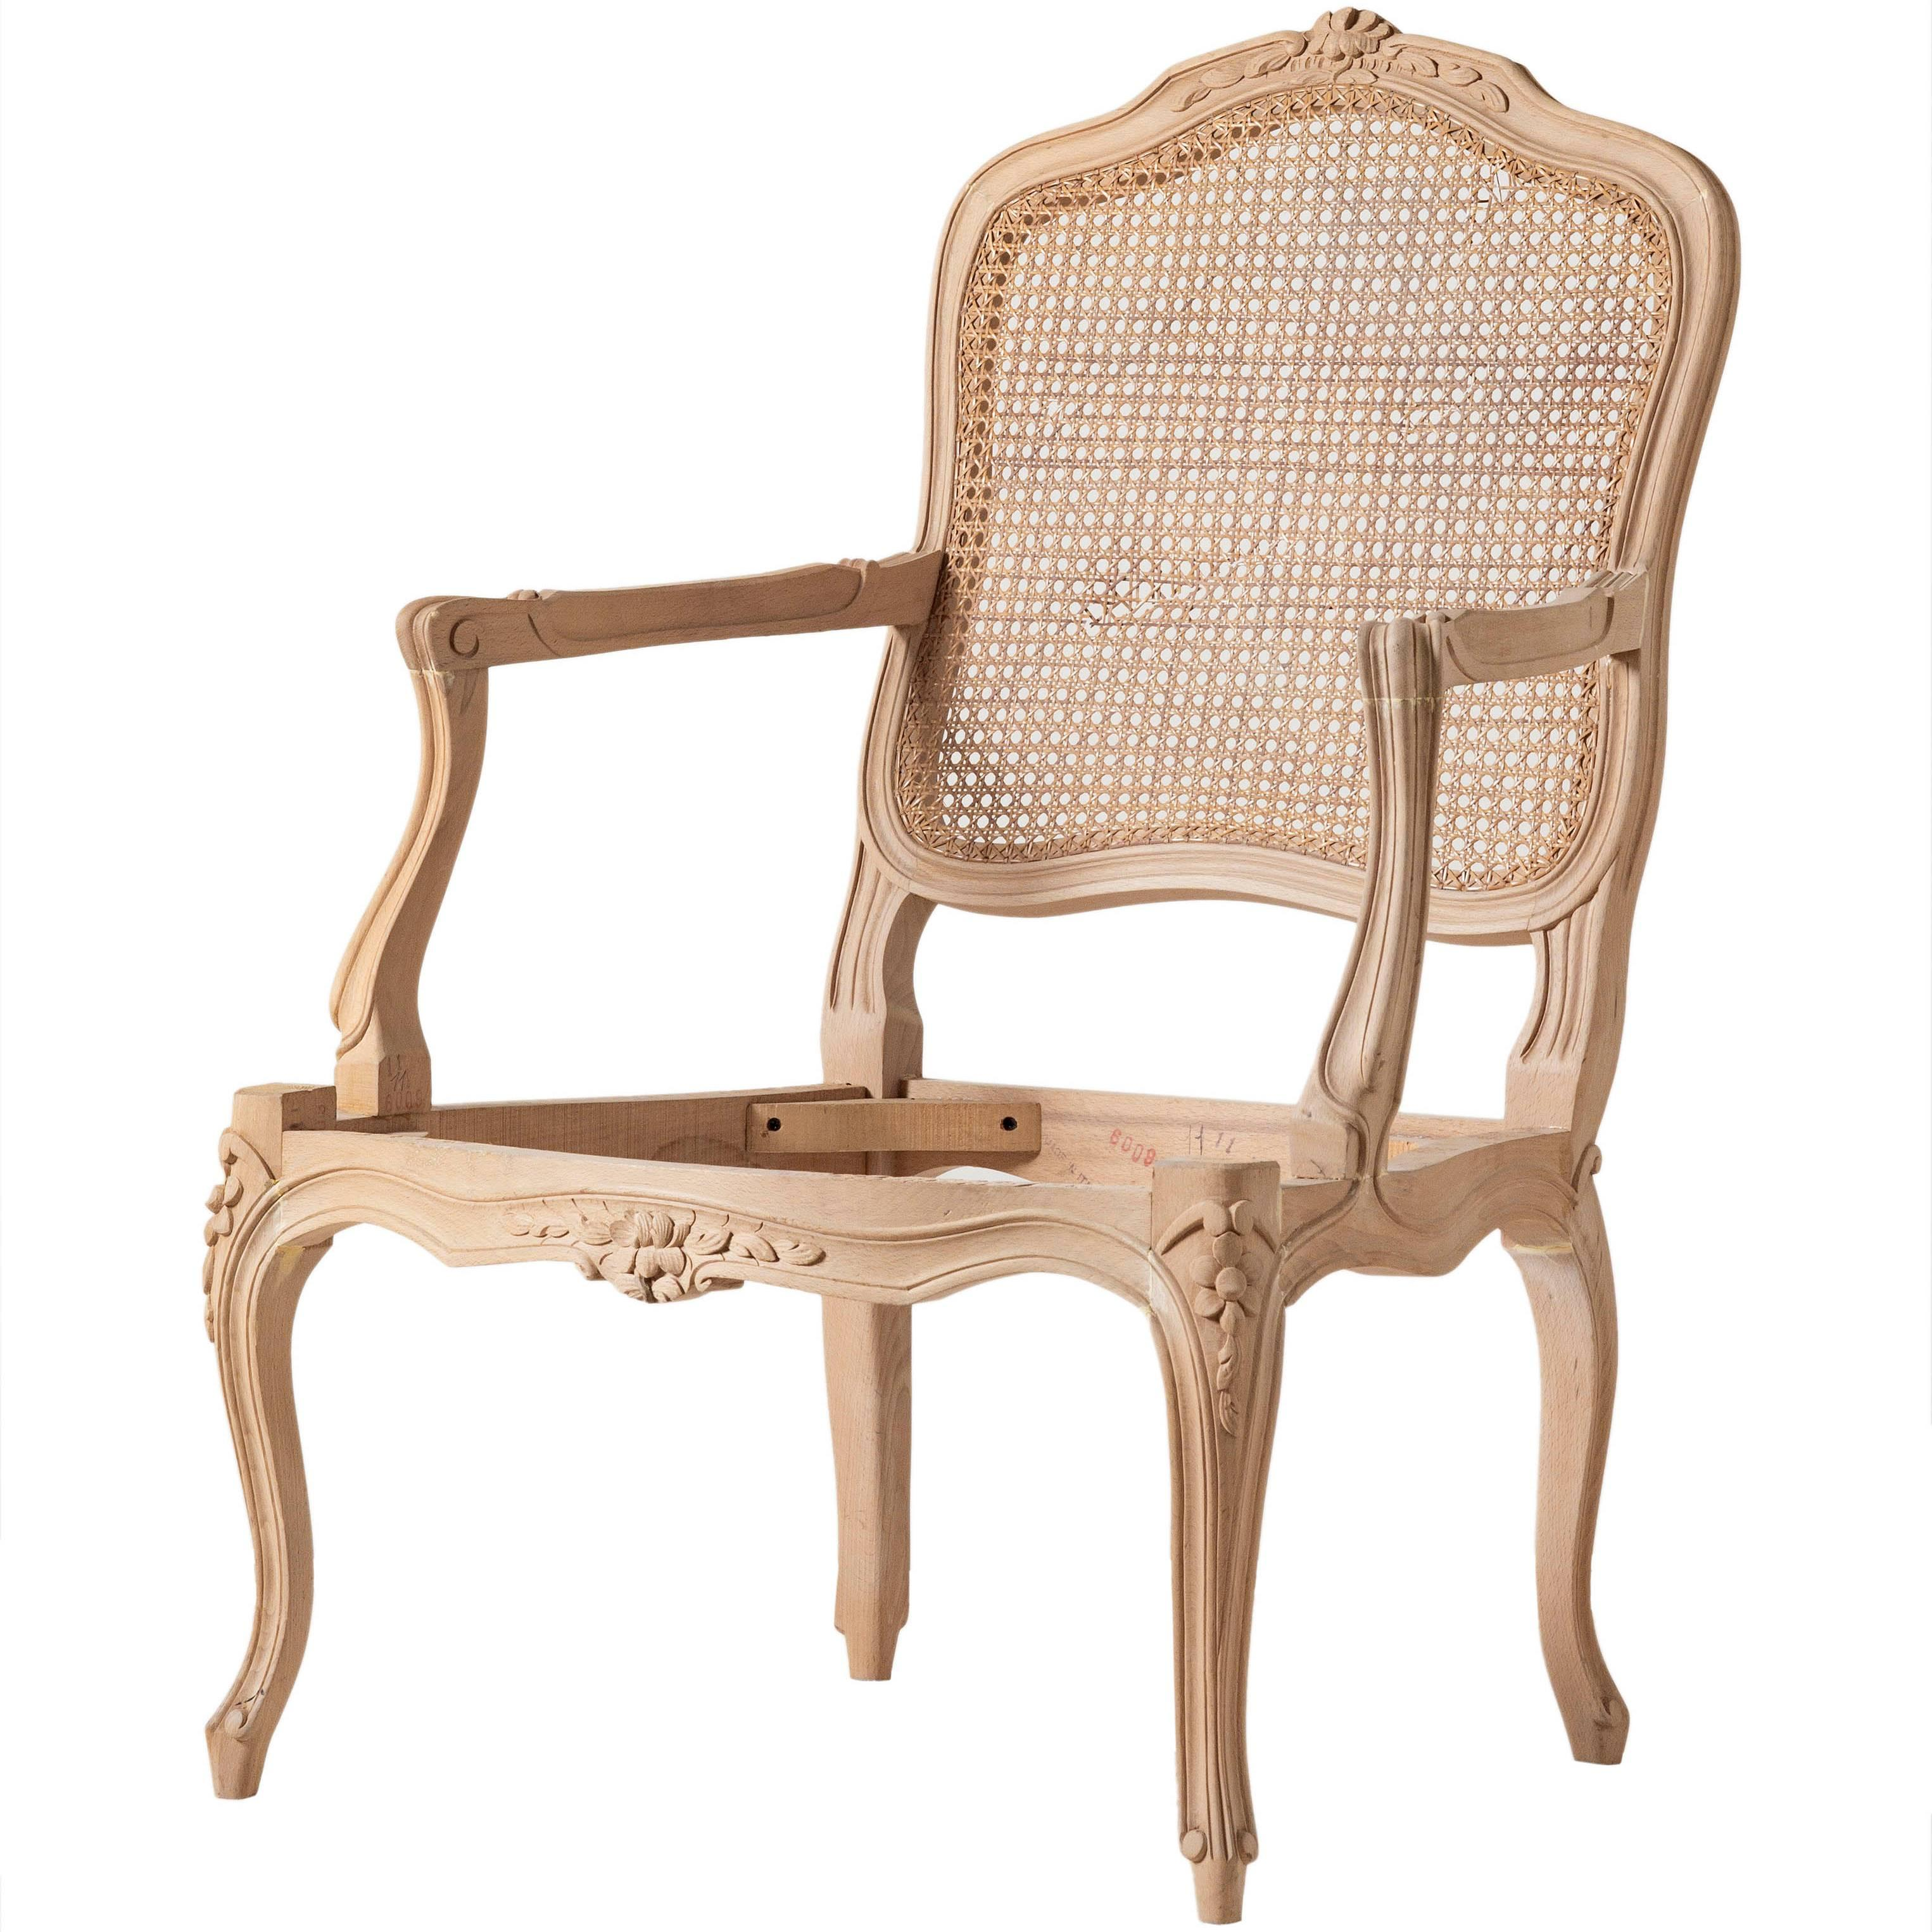 Charming Louis XVI Style Open Armchair And Carved Italian Beechwood Chair